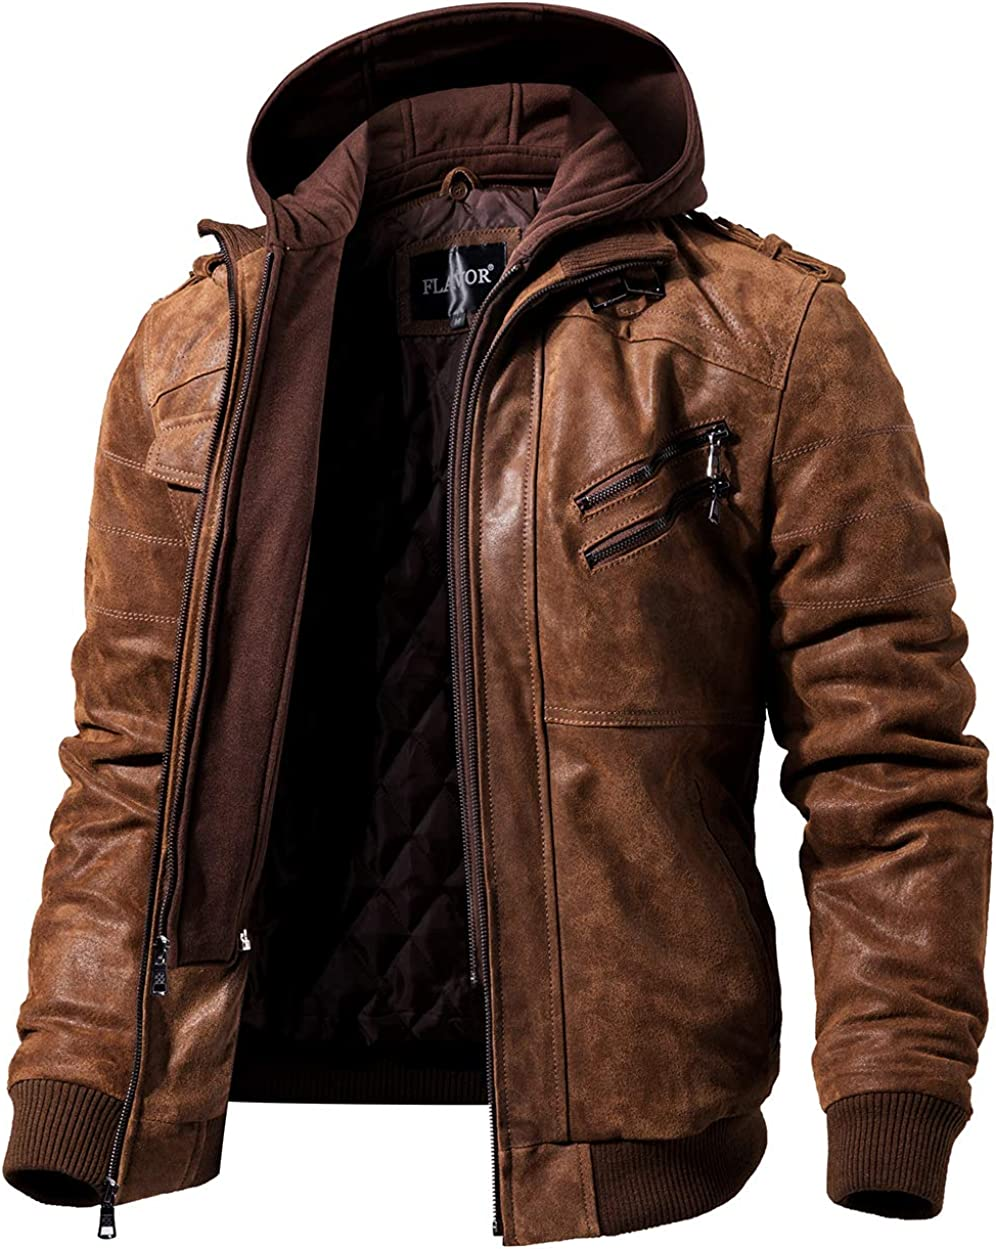 Mens Dark brown Leather Motorcycle Jacket with Removable Hood